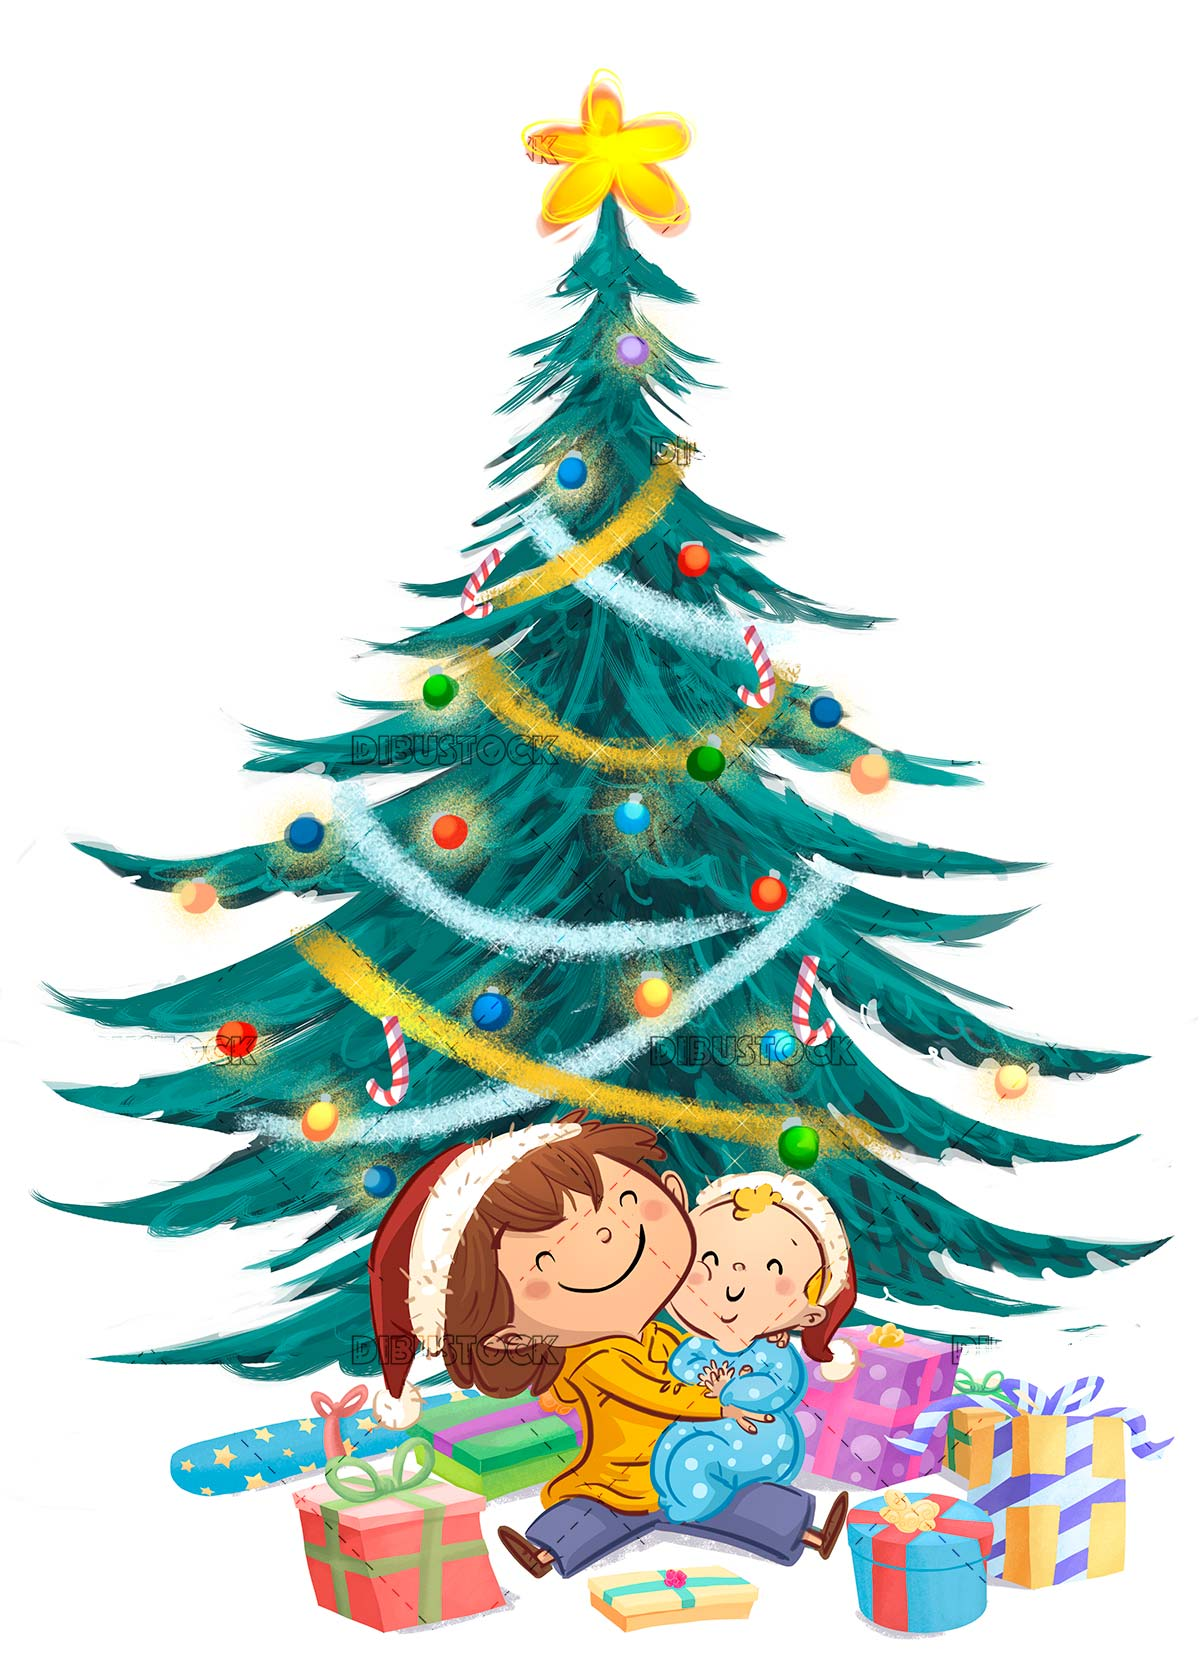 Boy and baby with Christmas gifts and ornate tree background isolated